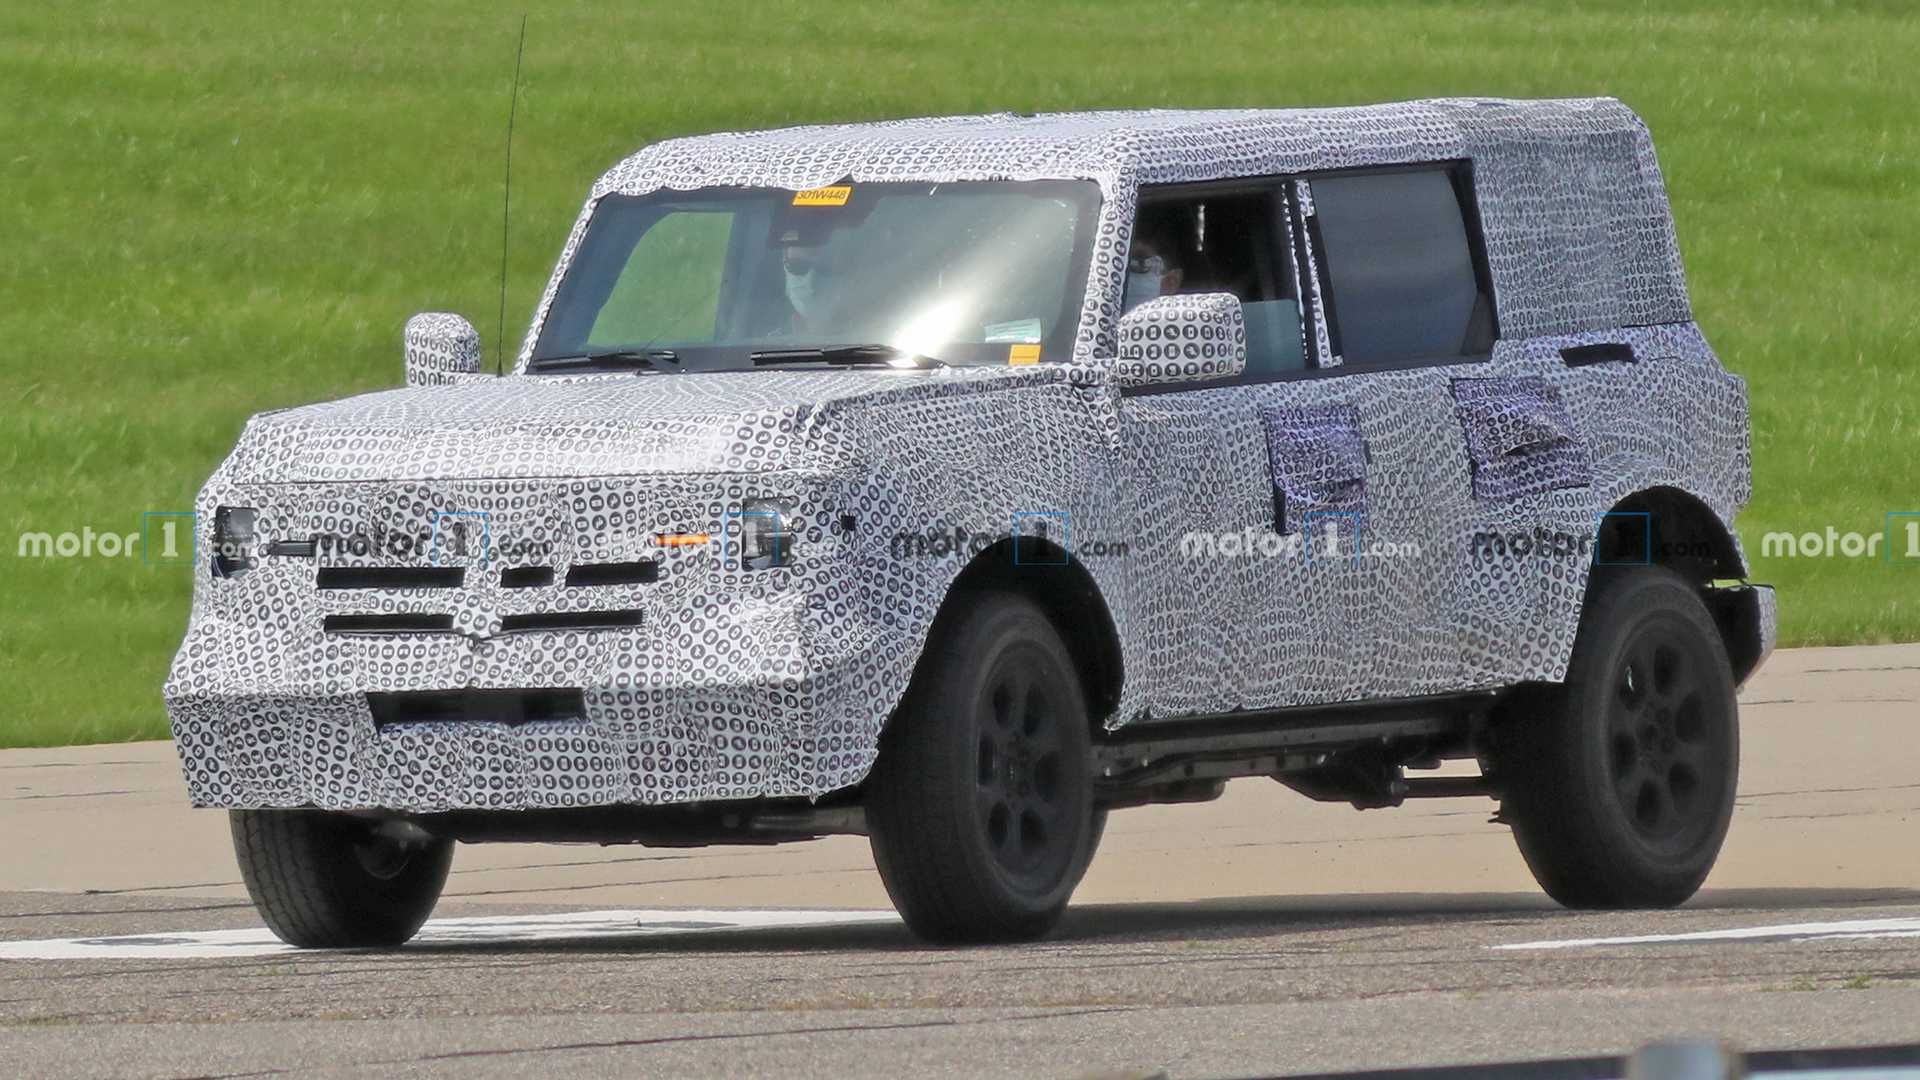 2021 Ford Bronco Getting 7-Speed Manual With Crawling Gear